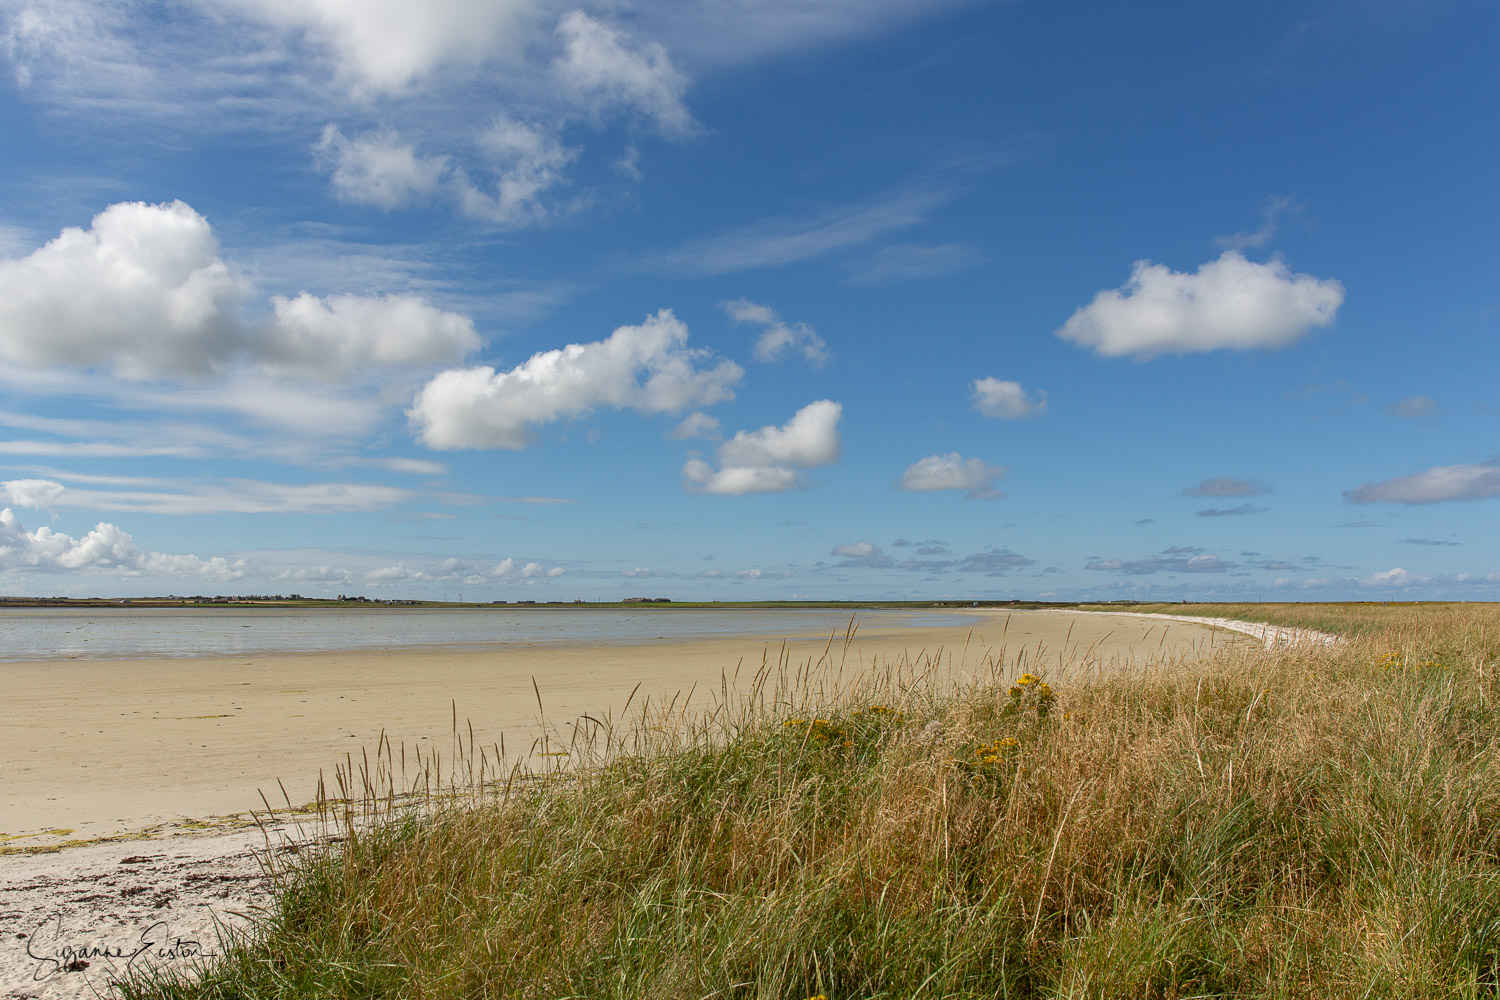 Cata sand is home to waders on the Orkney island of Sanday